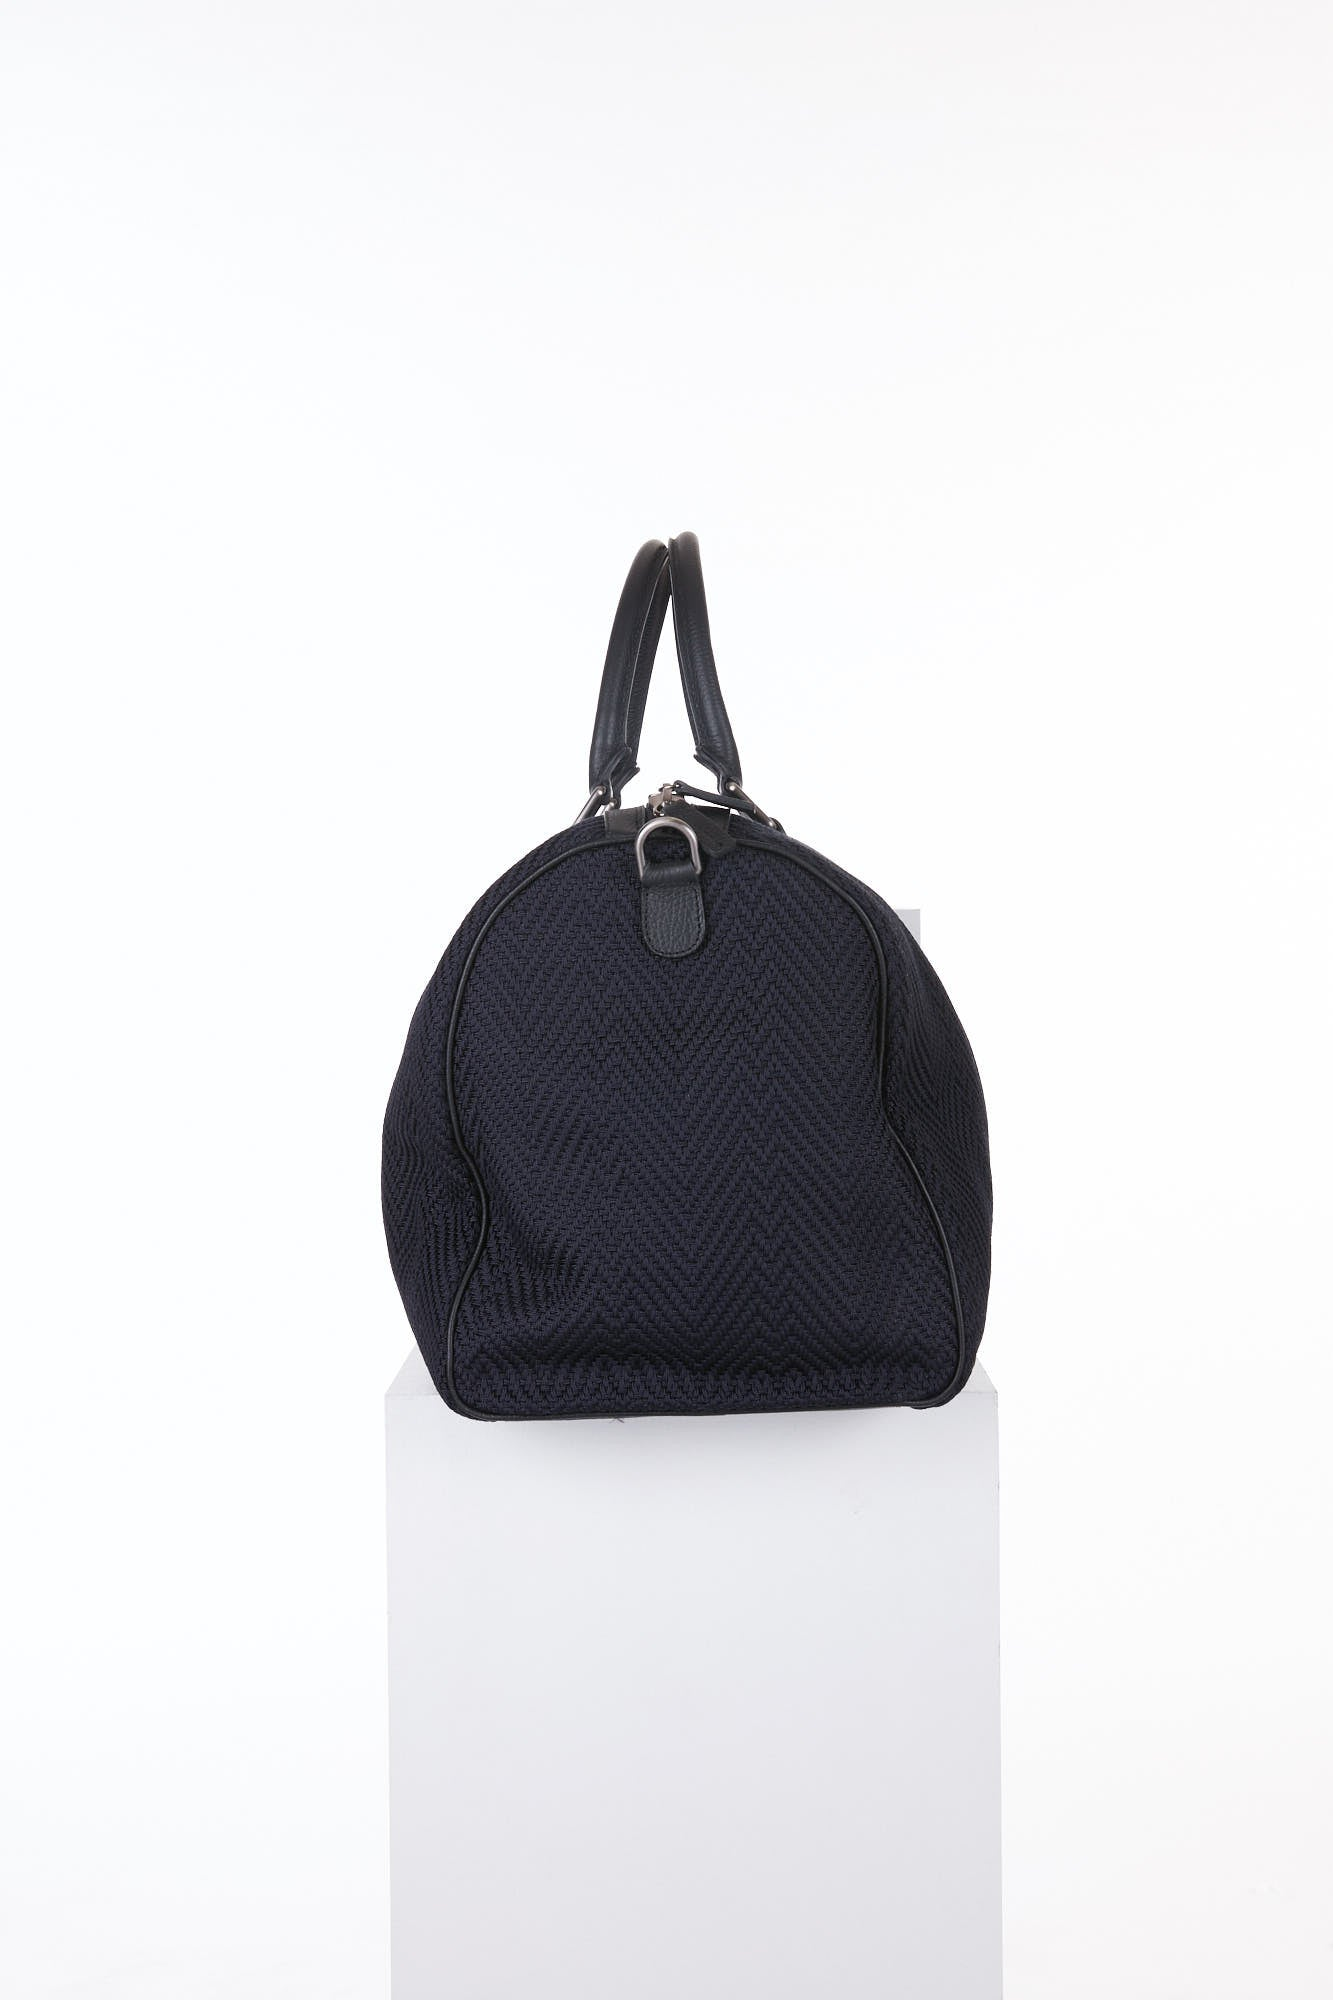 Anderson's Navy Woven Duffle Bag - Accessories - Anderson's - LALONDE's